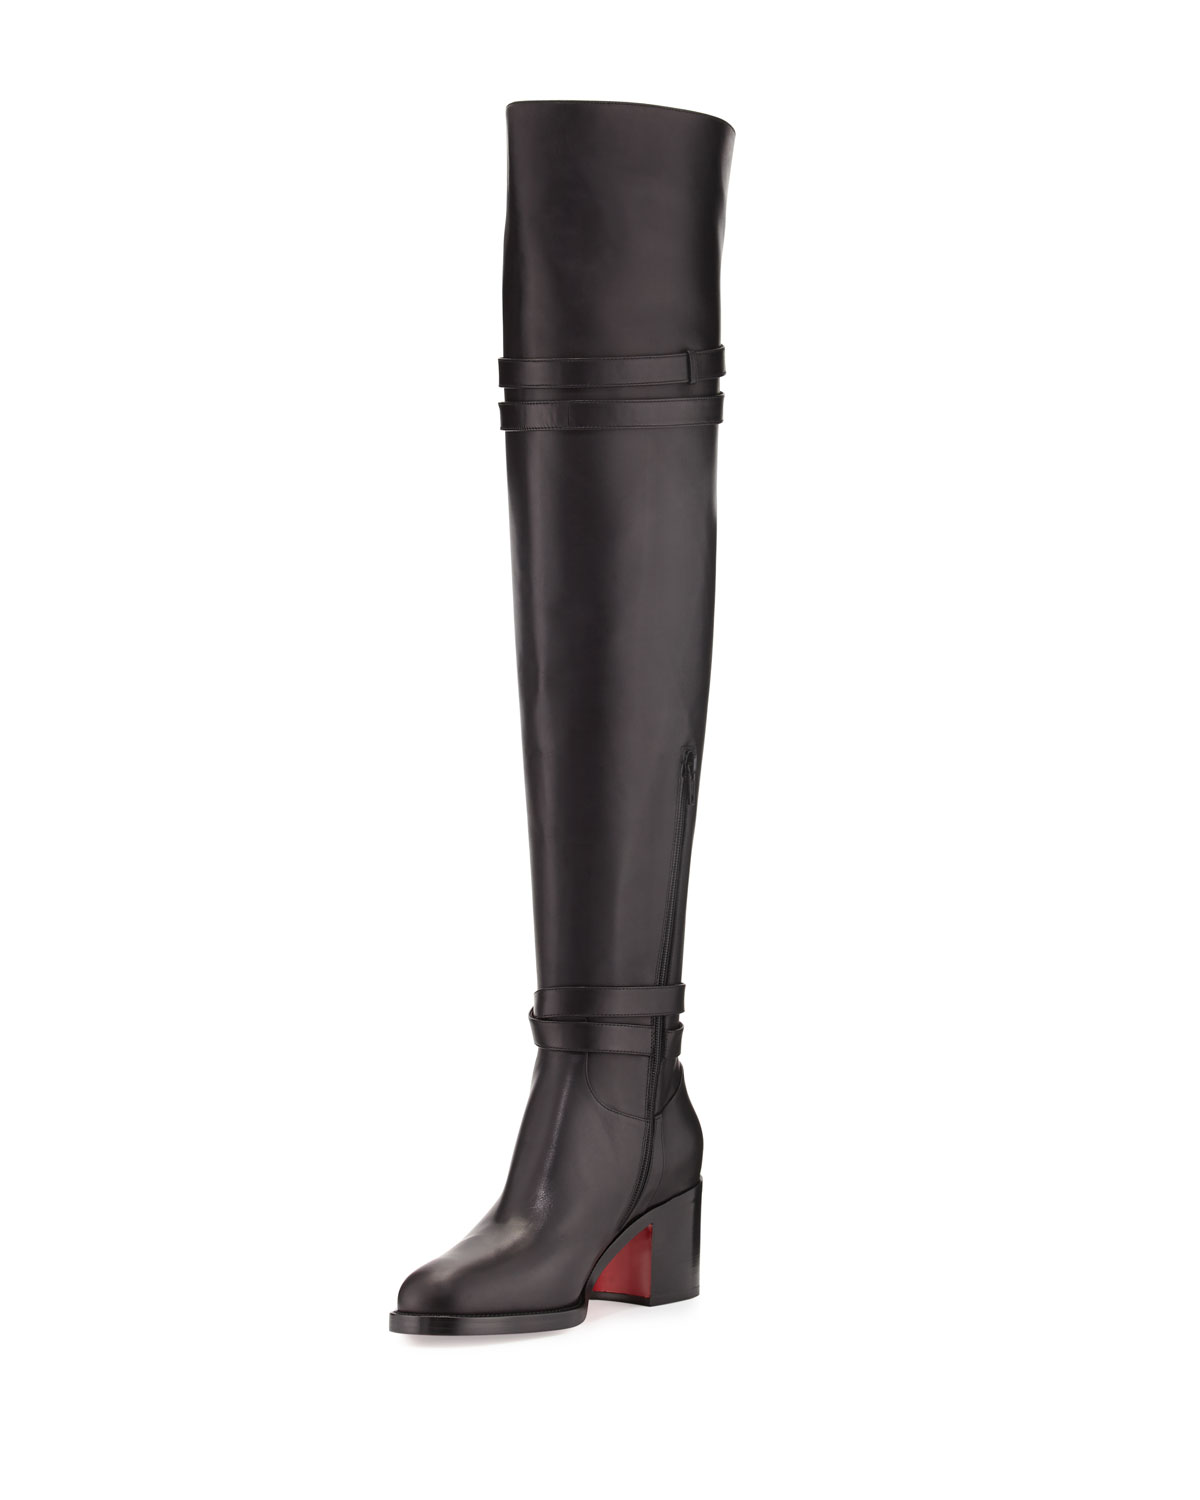 50d23a36f7e Karialta Leather 70mm Red Sole Over-the-Knee Boot, Black